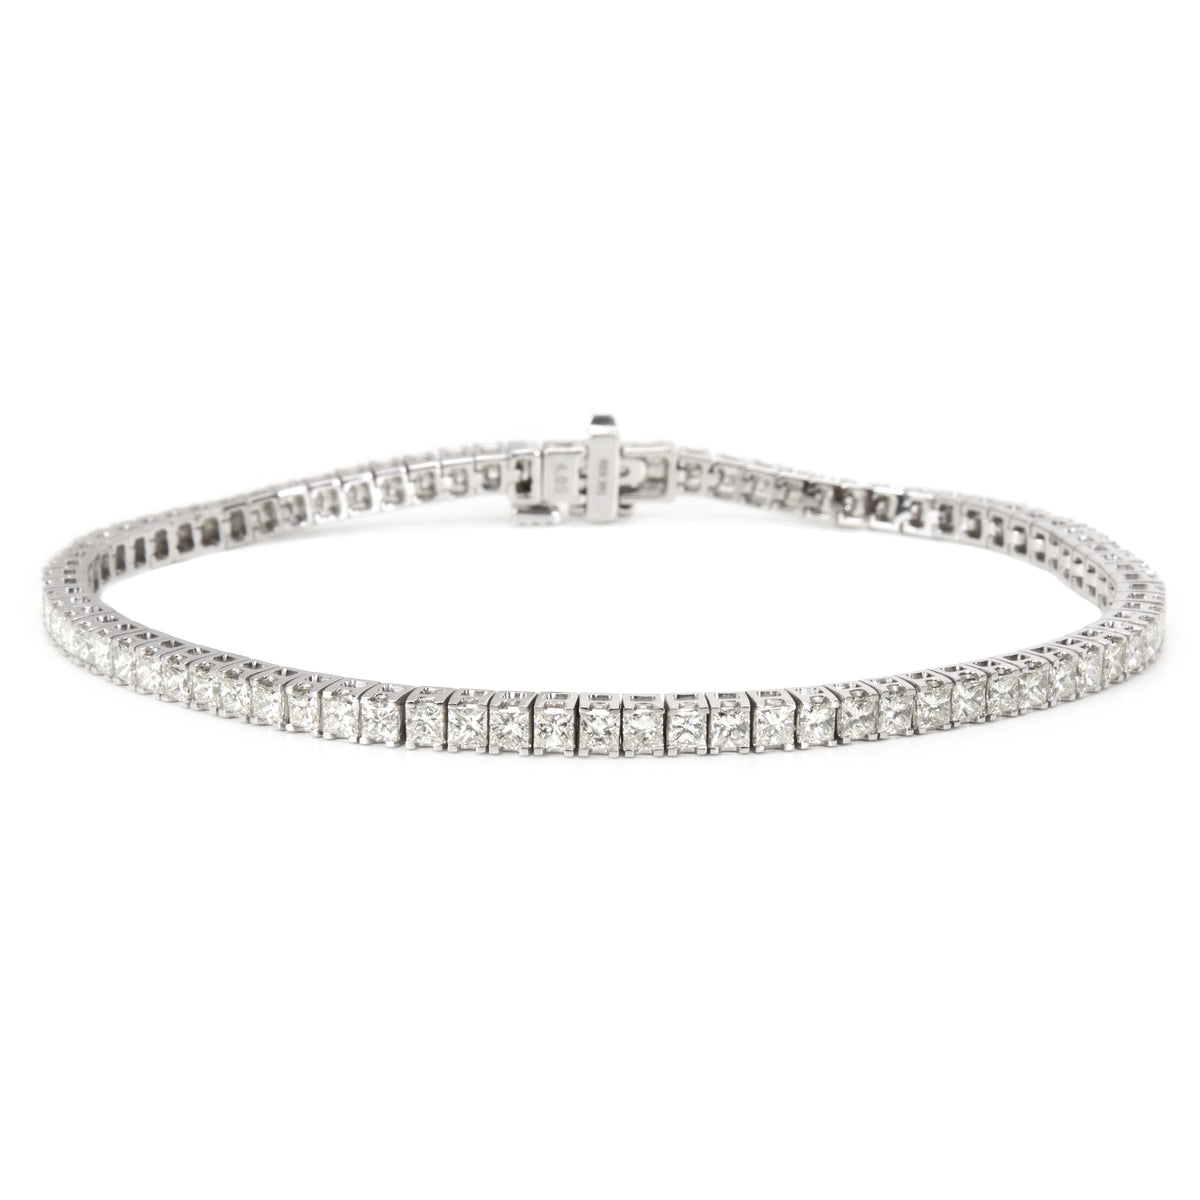 Princess Cut Diamond Tennis Bracelet in 14KT White Gold 4.17 ctw